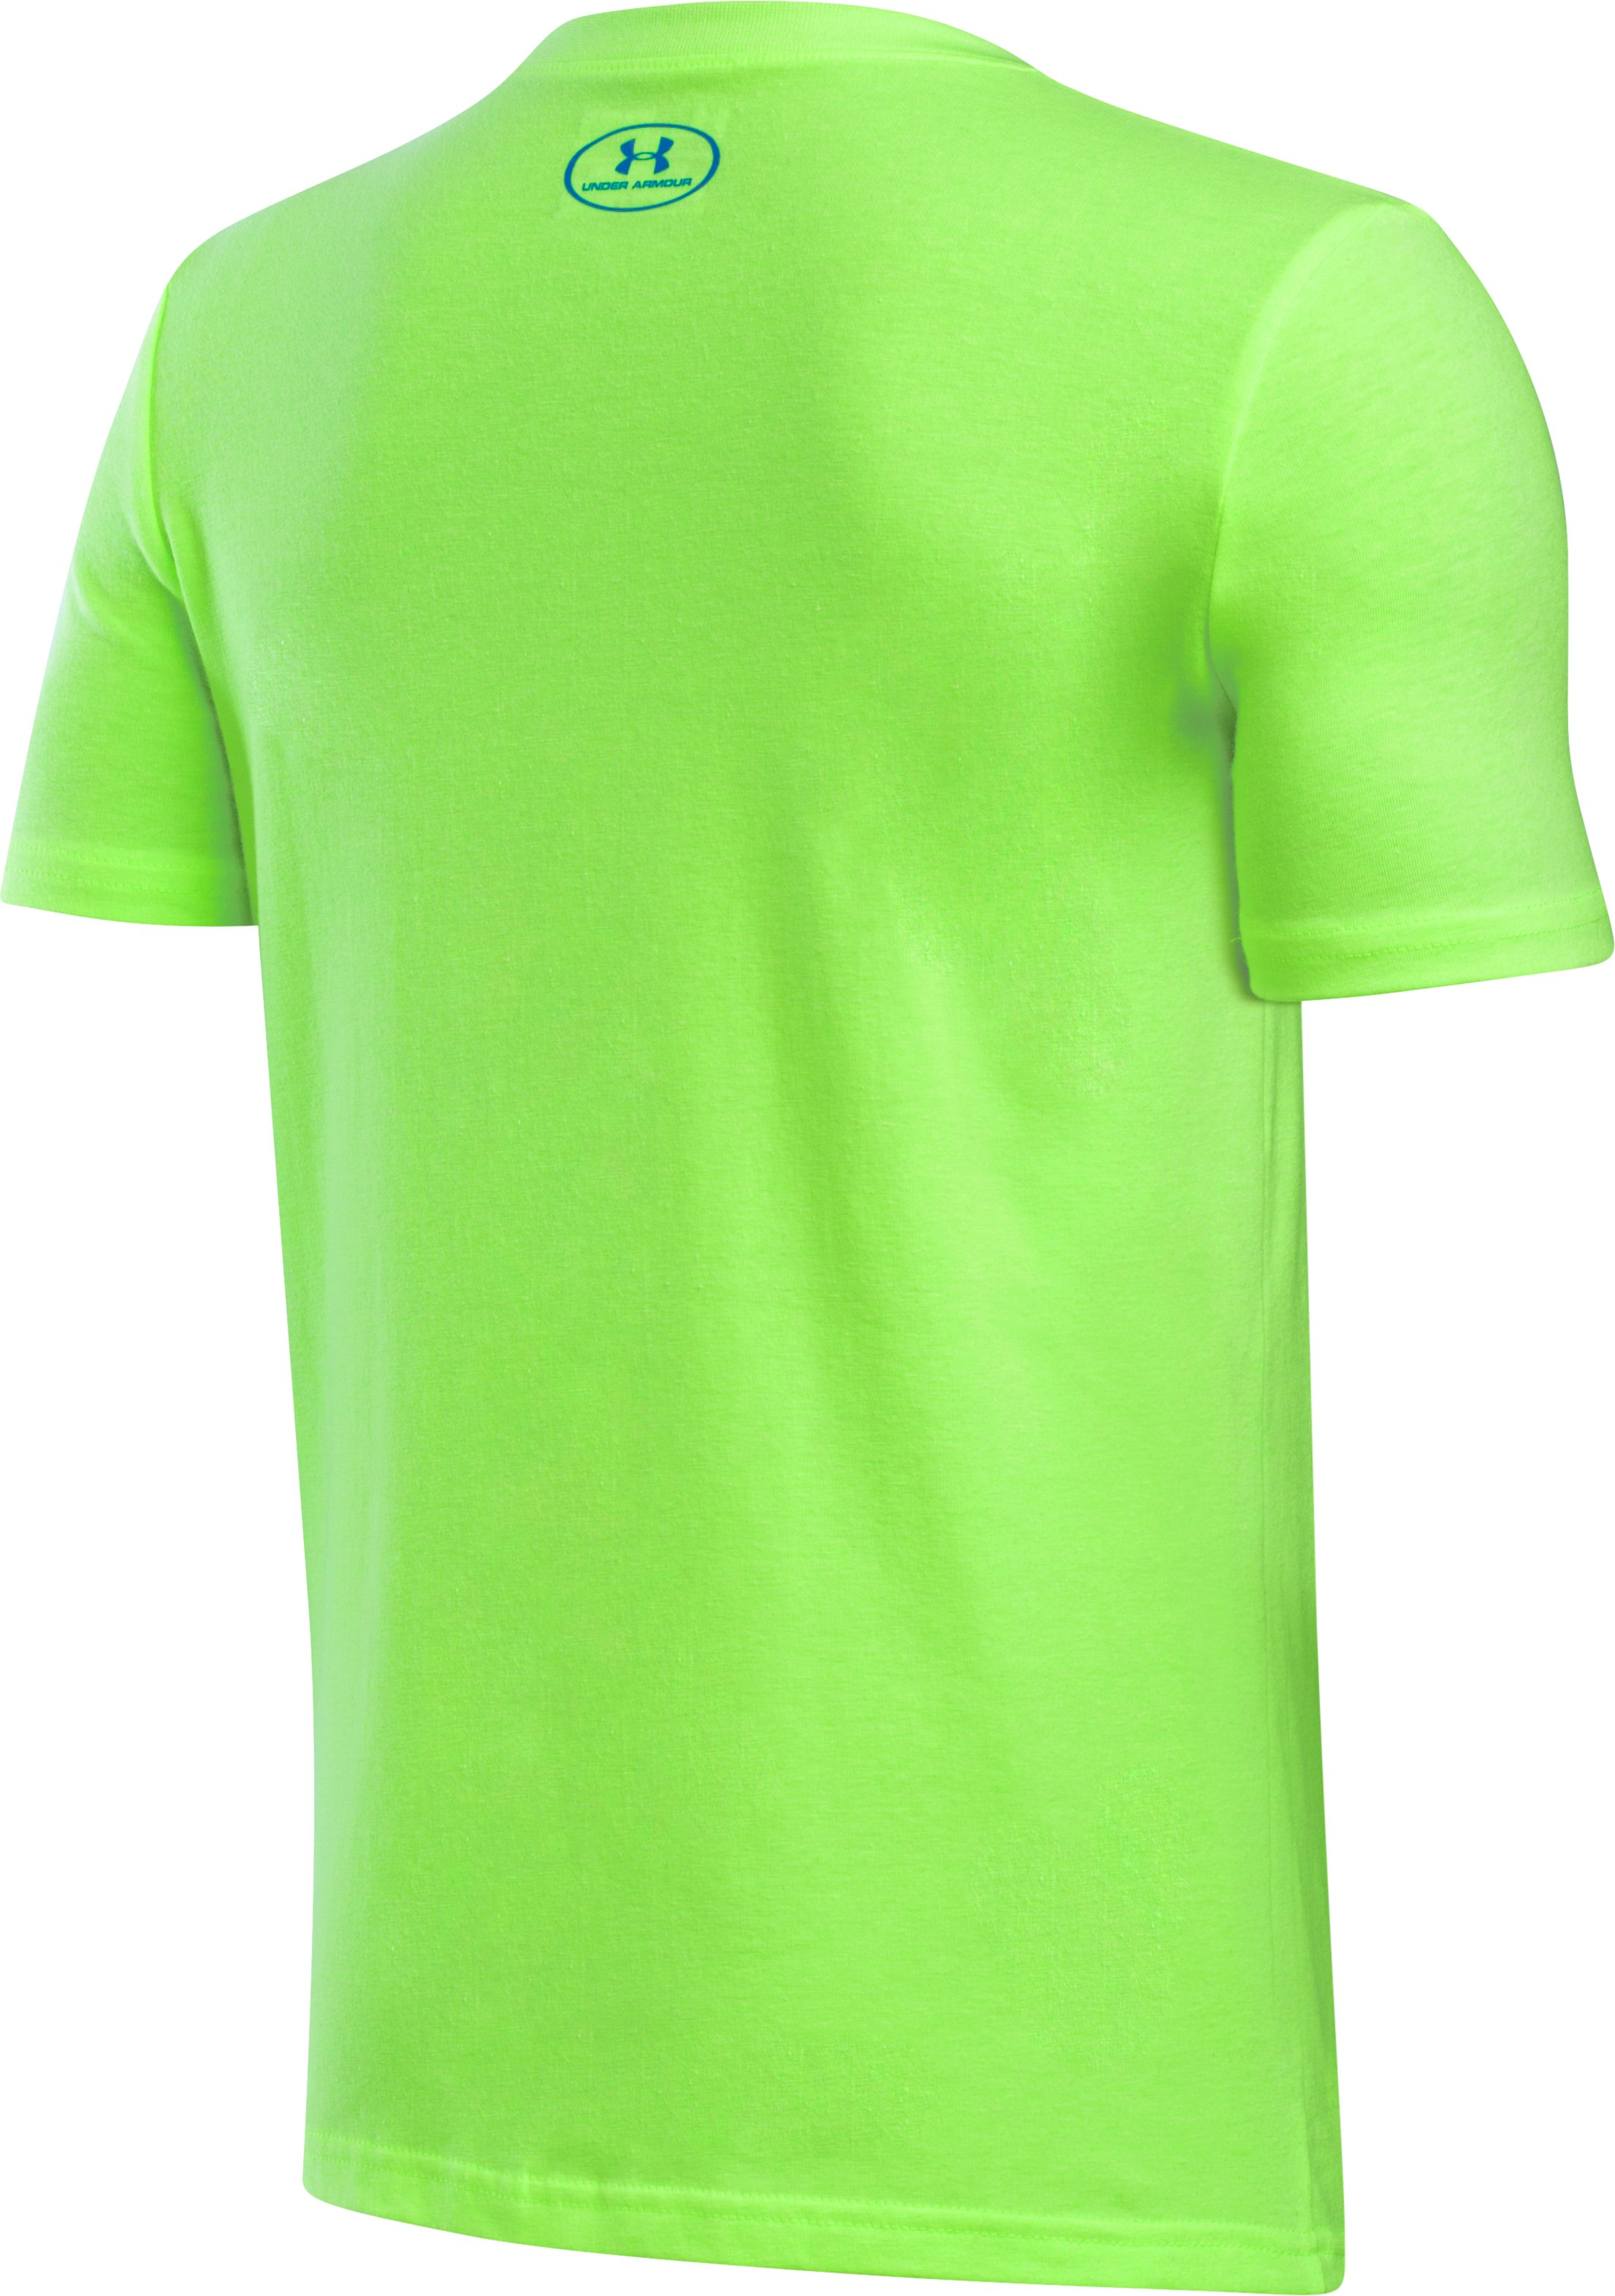 Boys' UA Duo Blocked T-Shirt, QUIRKY LIME LIGHT HEATHER, undefined